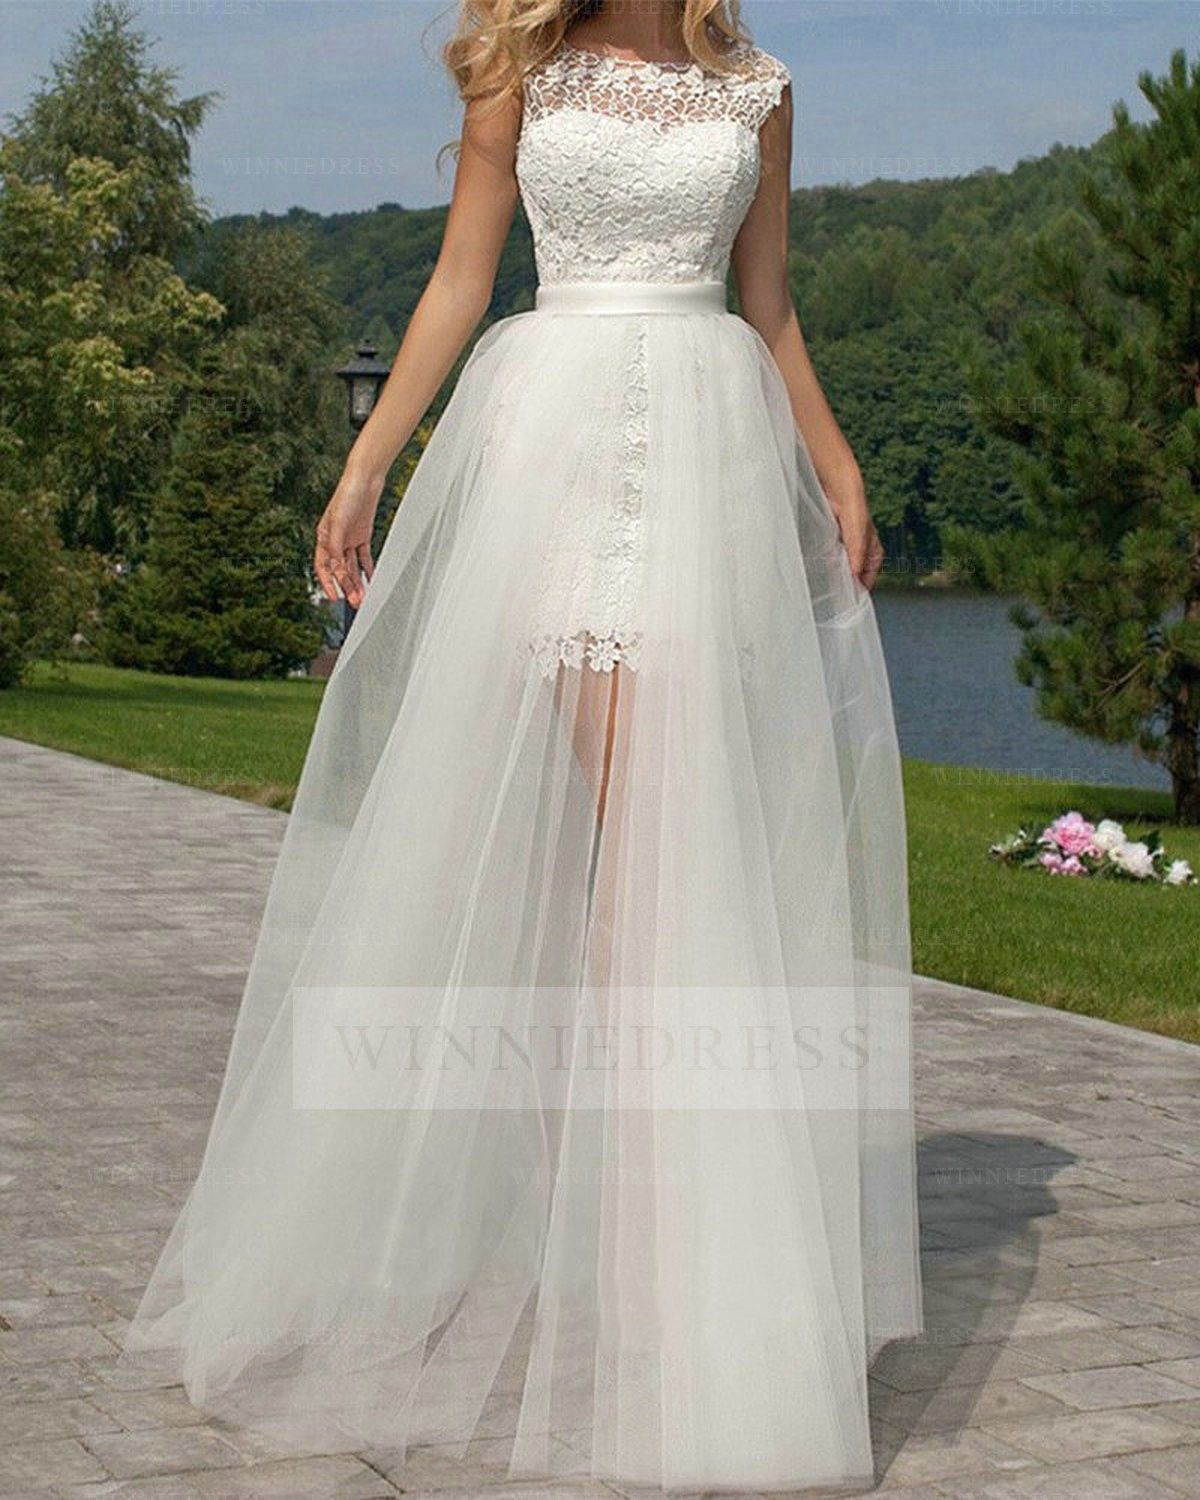 Shop discount Two In One High Low Lace Wedding Dresses